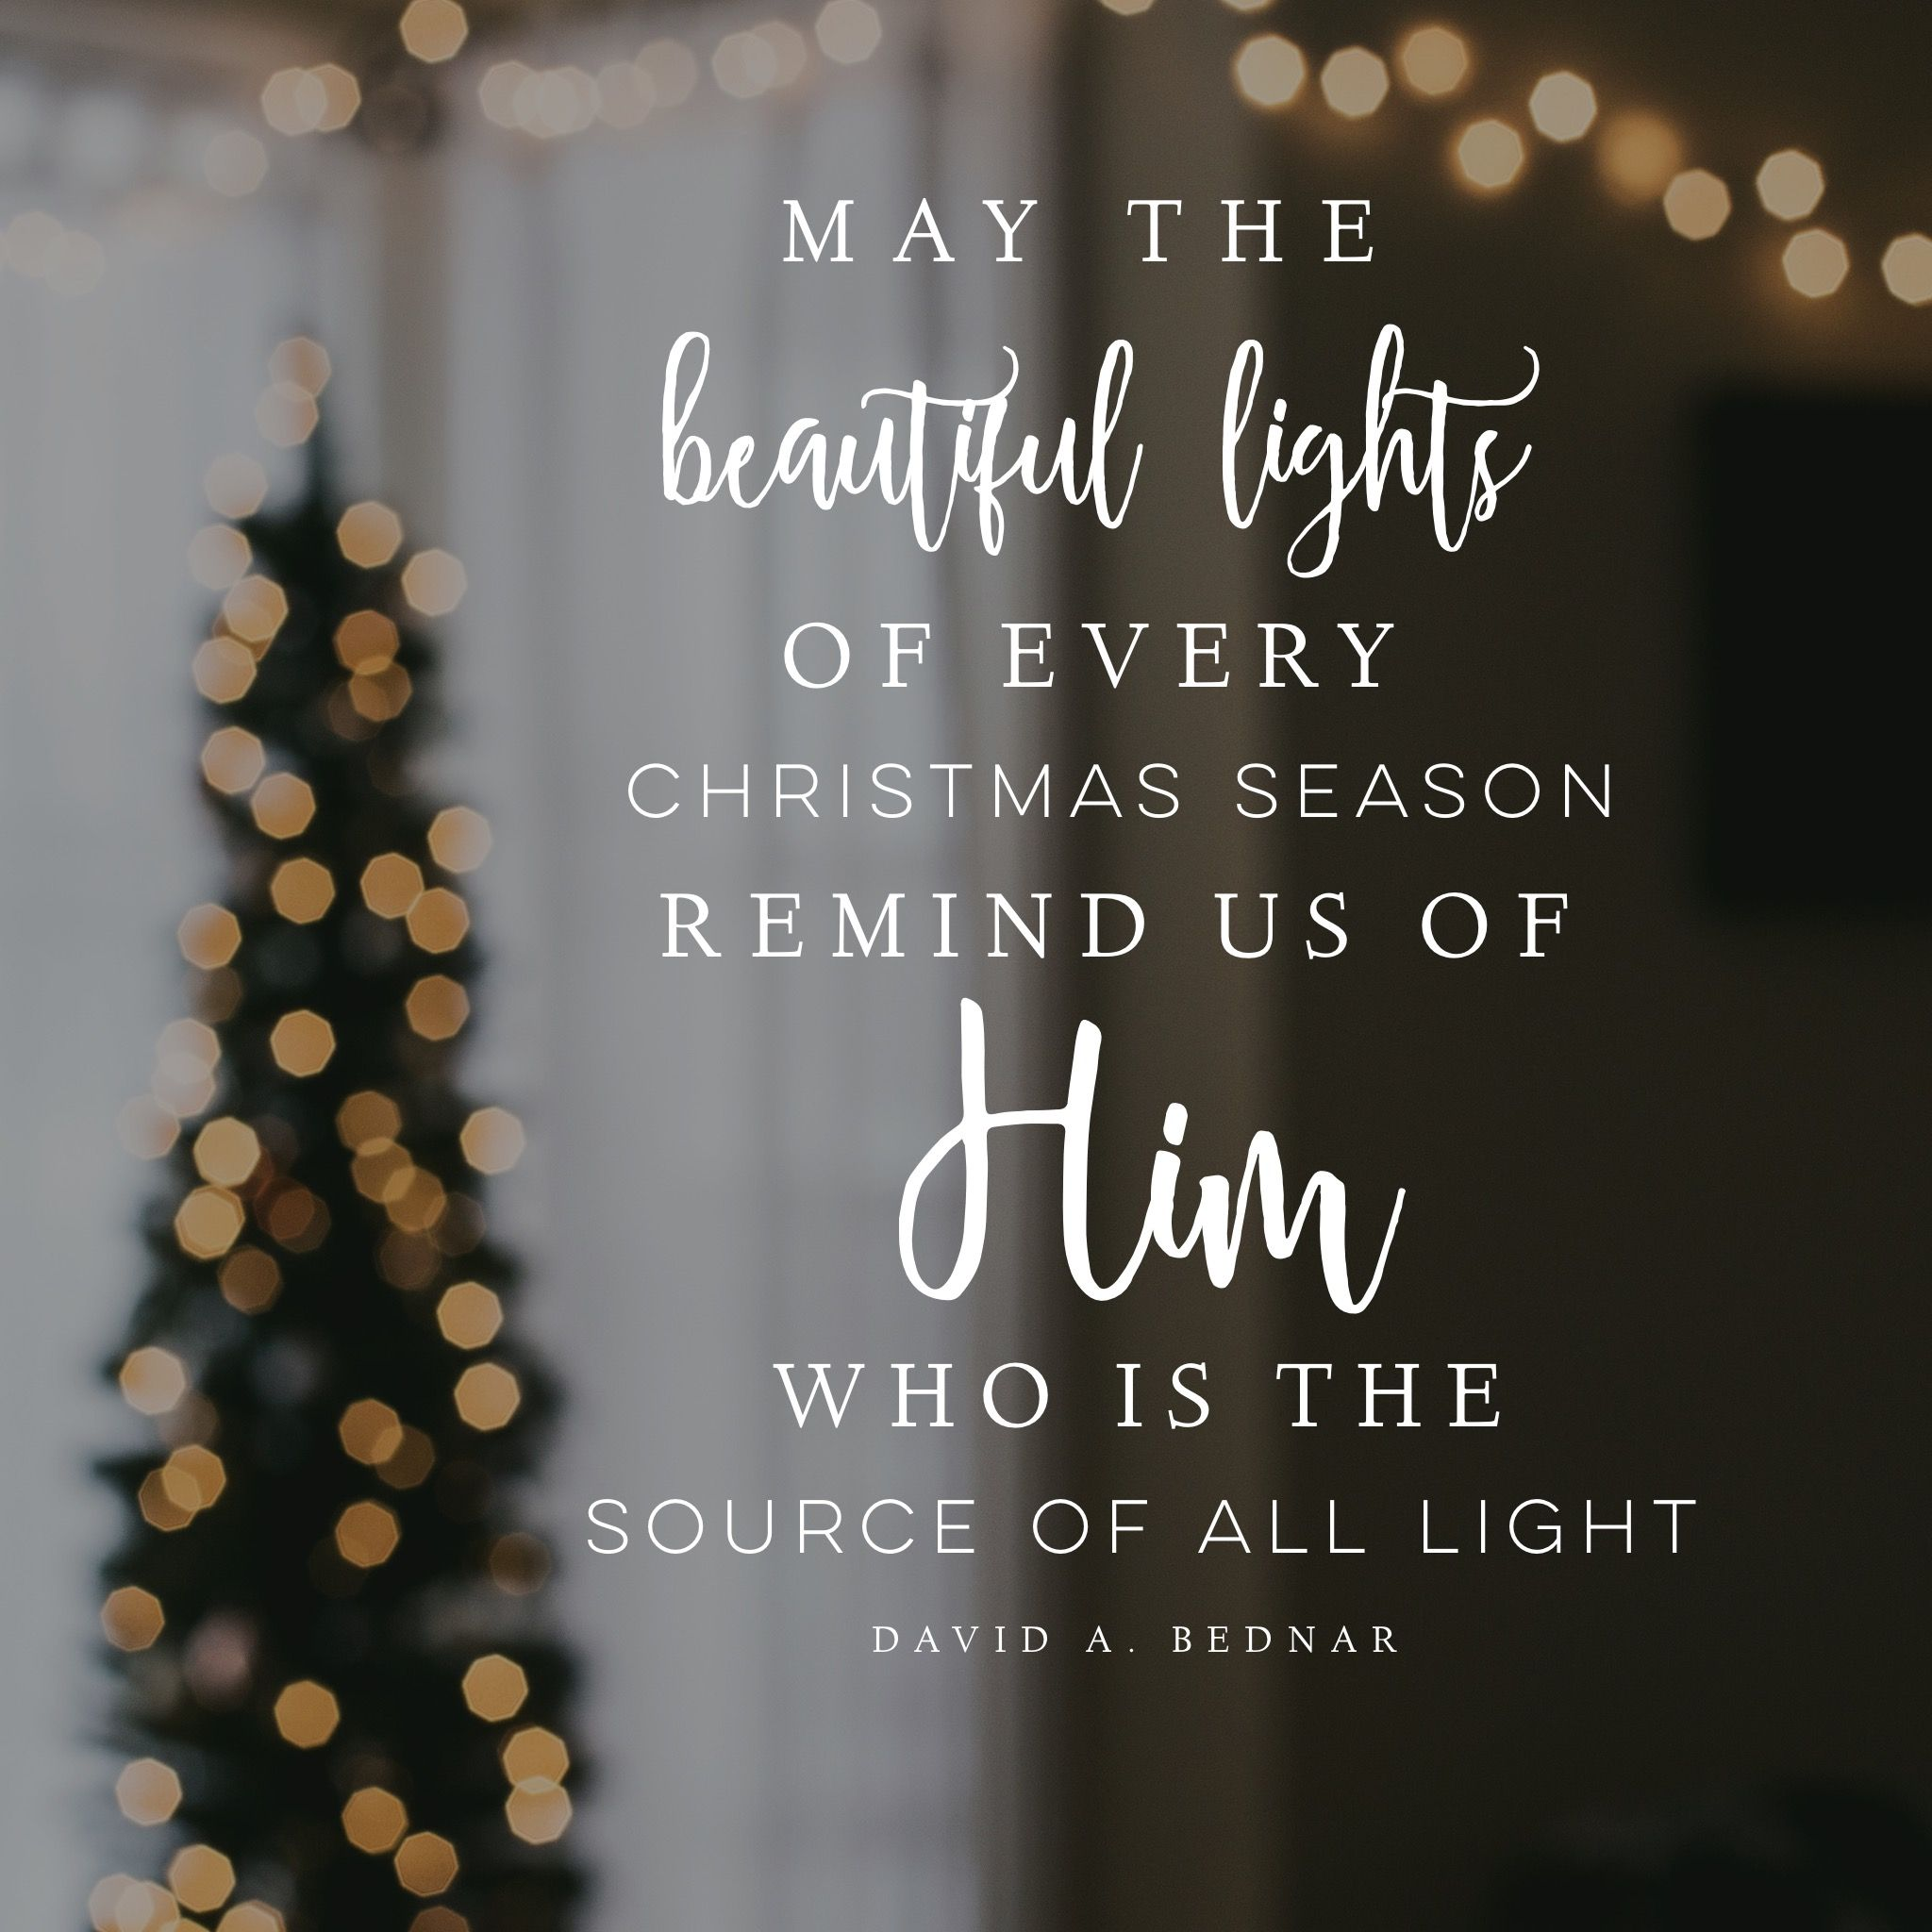 """May the beautiful lights of every Christmas season remind"